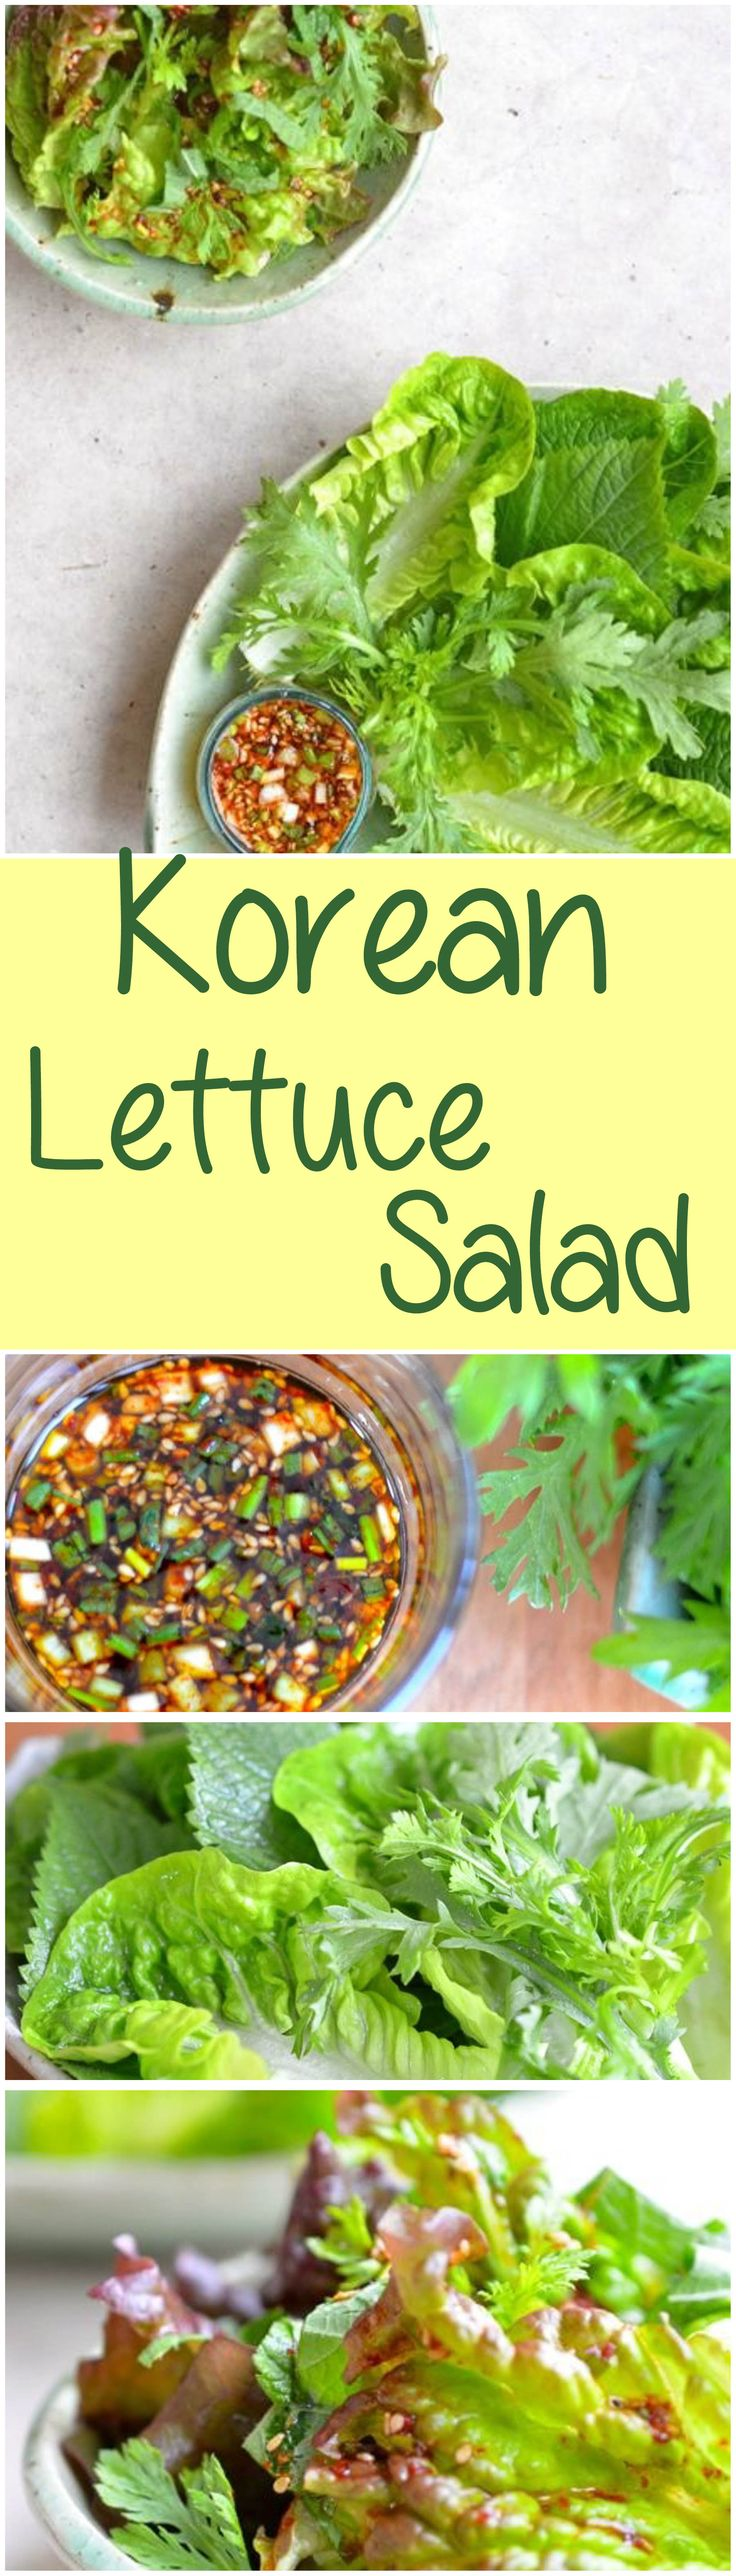 Often served with Korean BBQ, fresh lettuce and greens are coated in soy sauce and vinegar dressing with a hint of chili. It is a compliment to any meat dish. So refreshing and delicious!  | Kimchimari.com